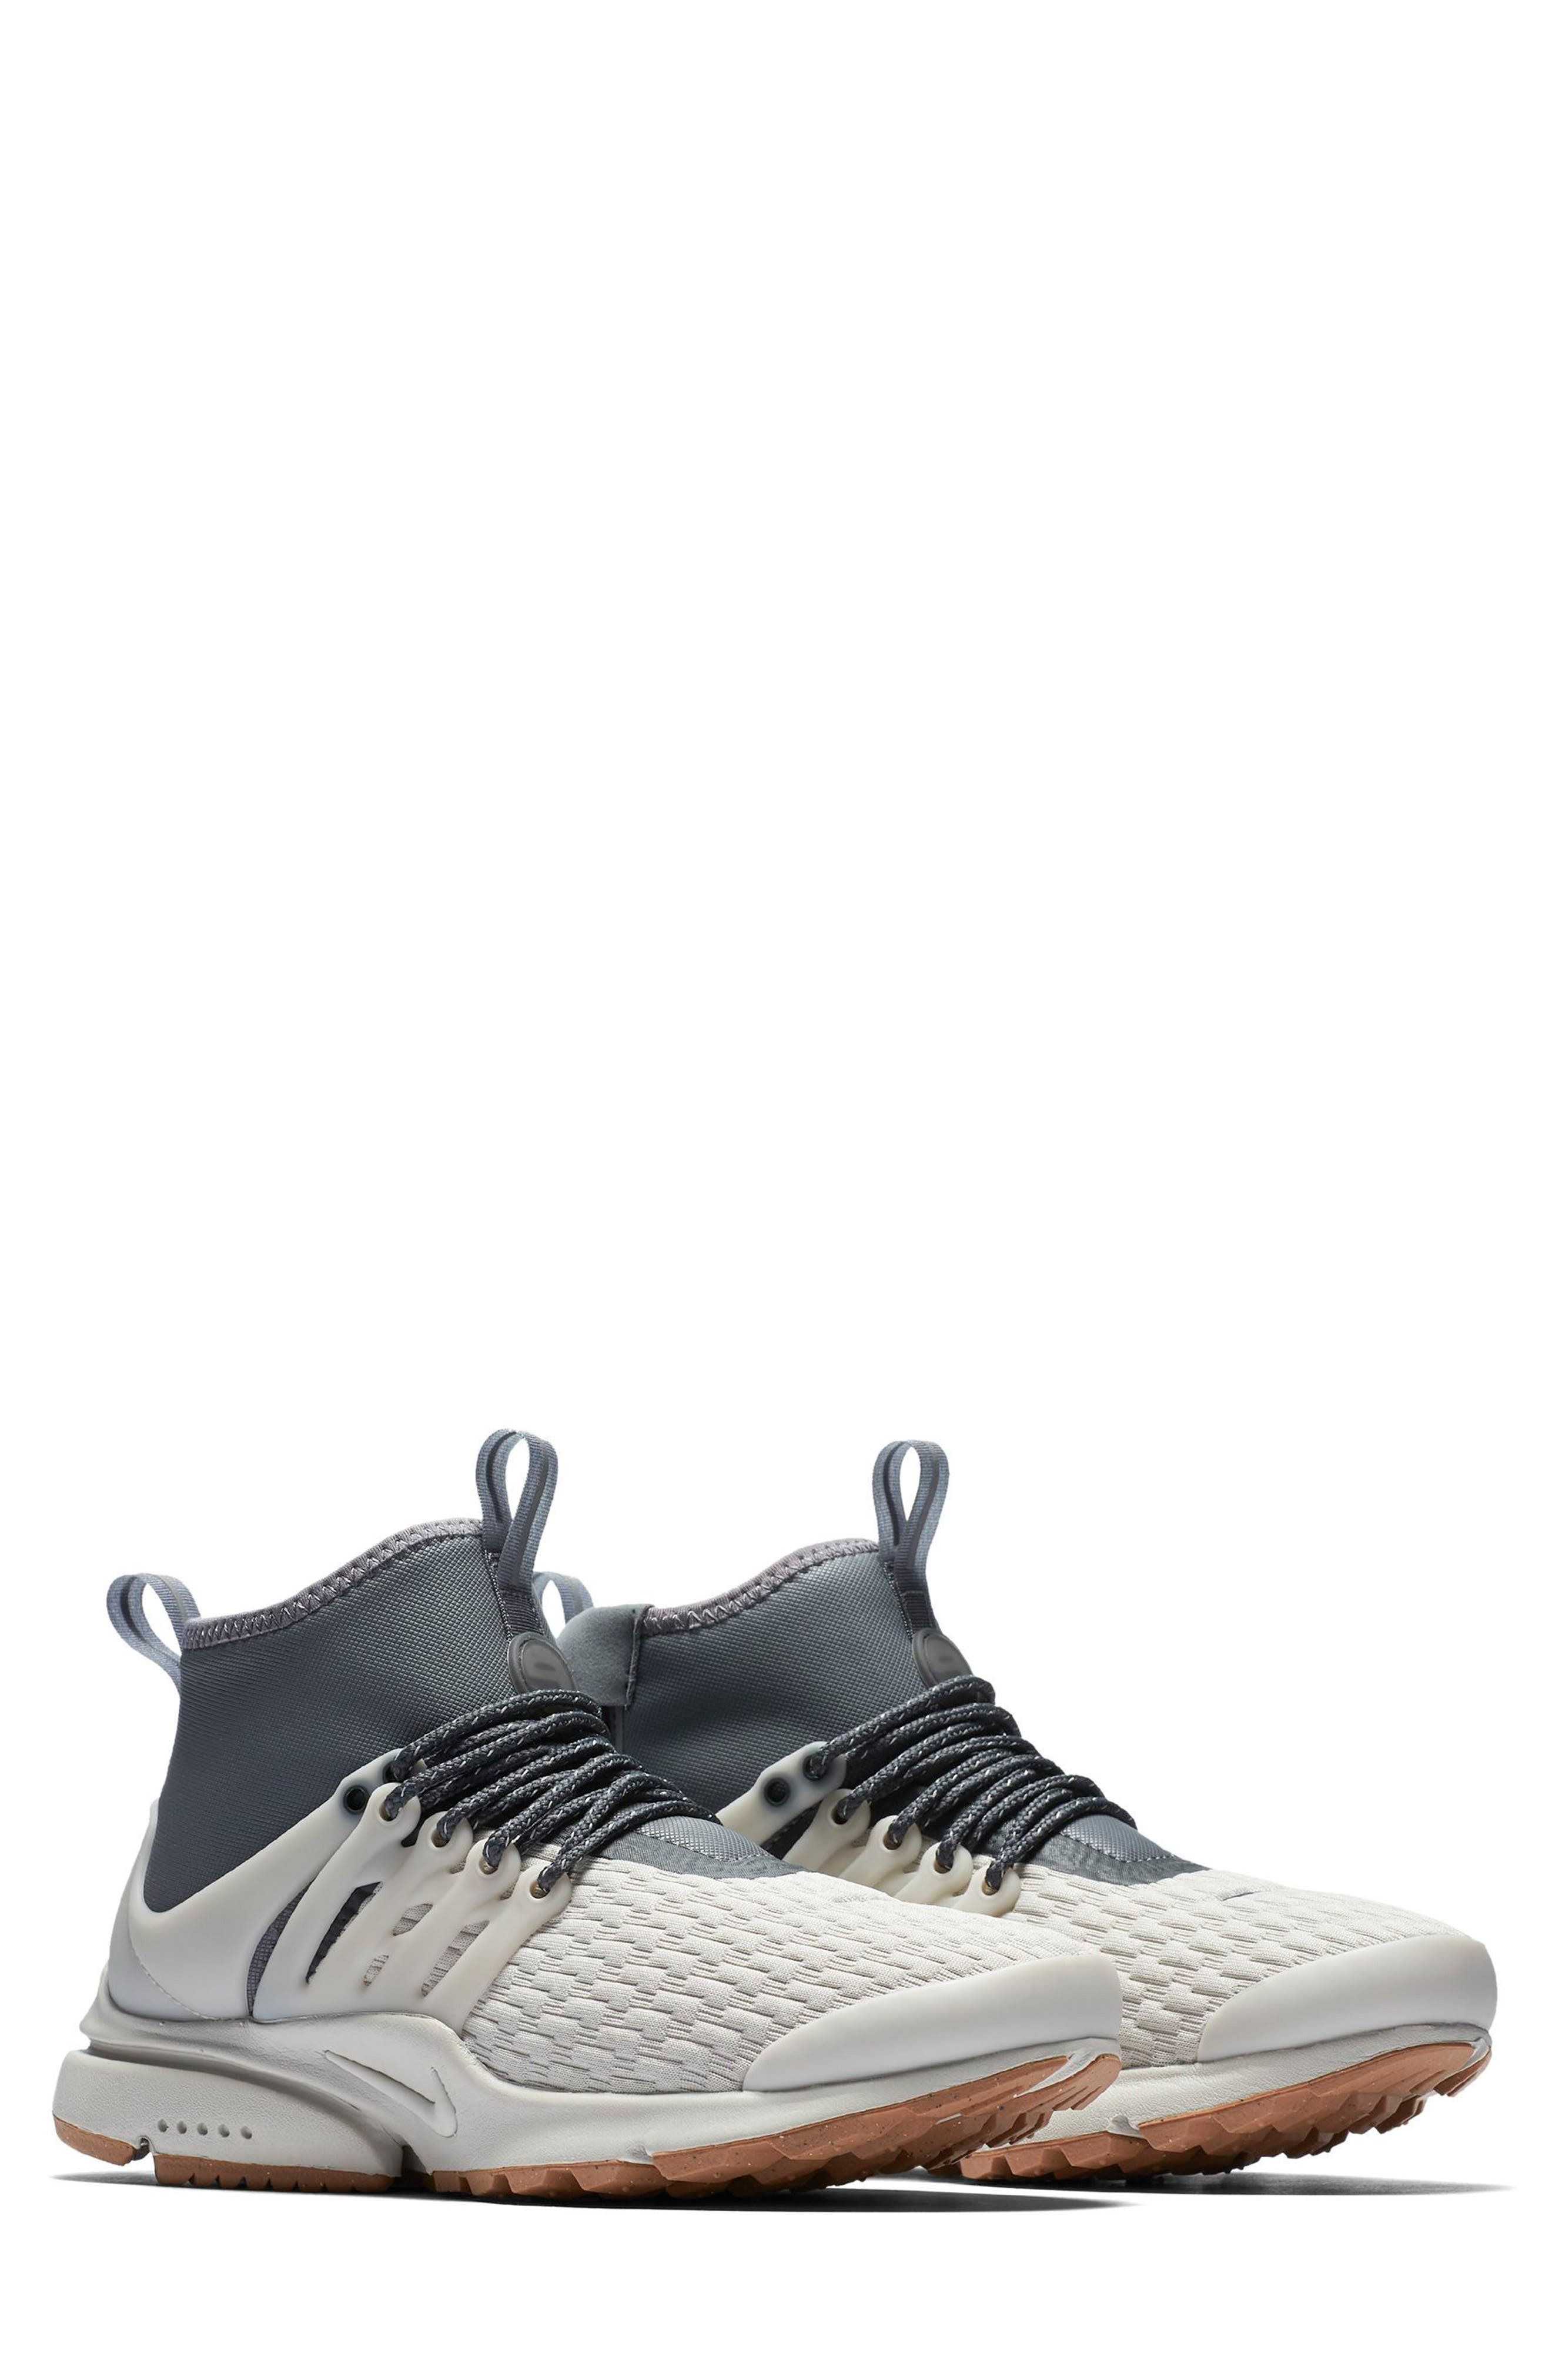 Air Presto Mid Utility Water Repellent Sneaker,                             Main thumbnail 1, color,                             LIGHT BONE/ COOL GREY